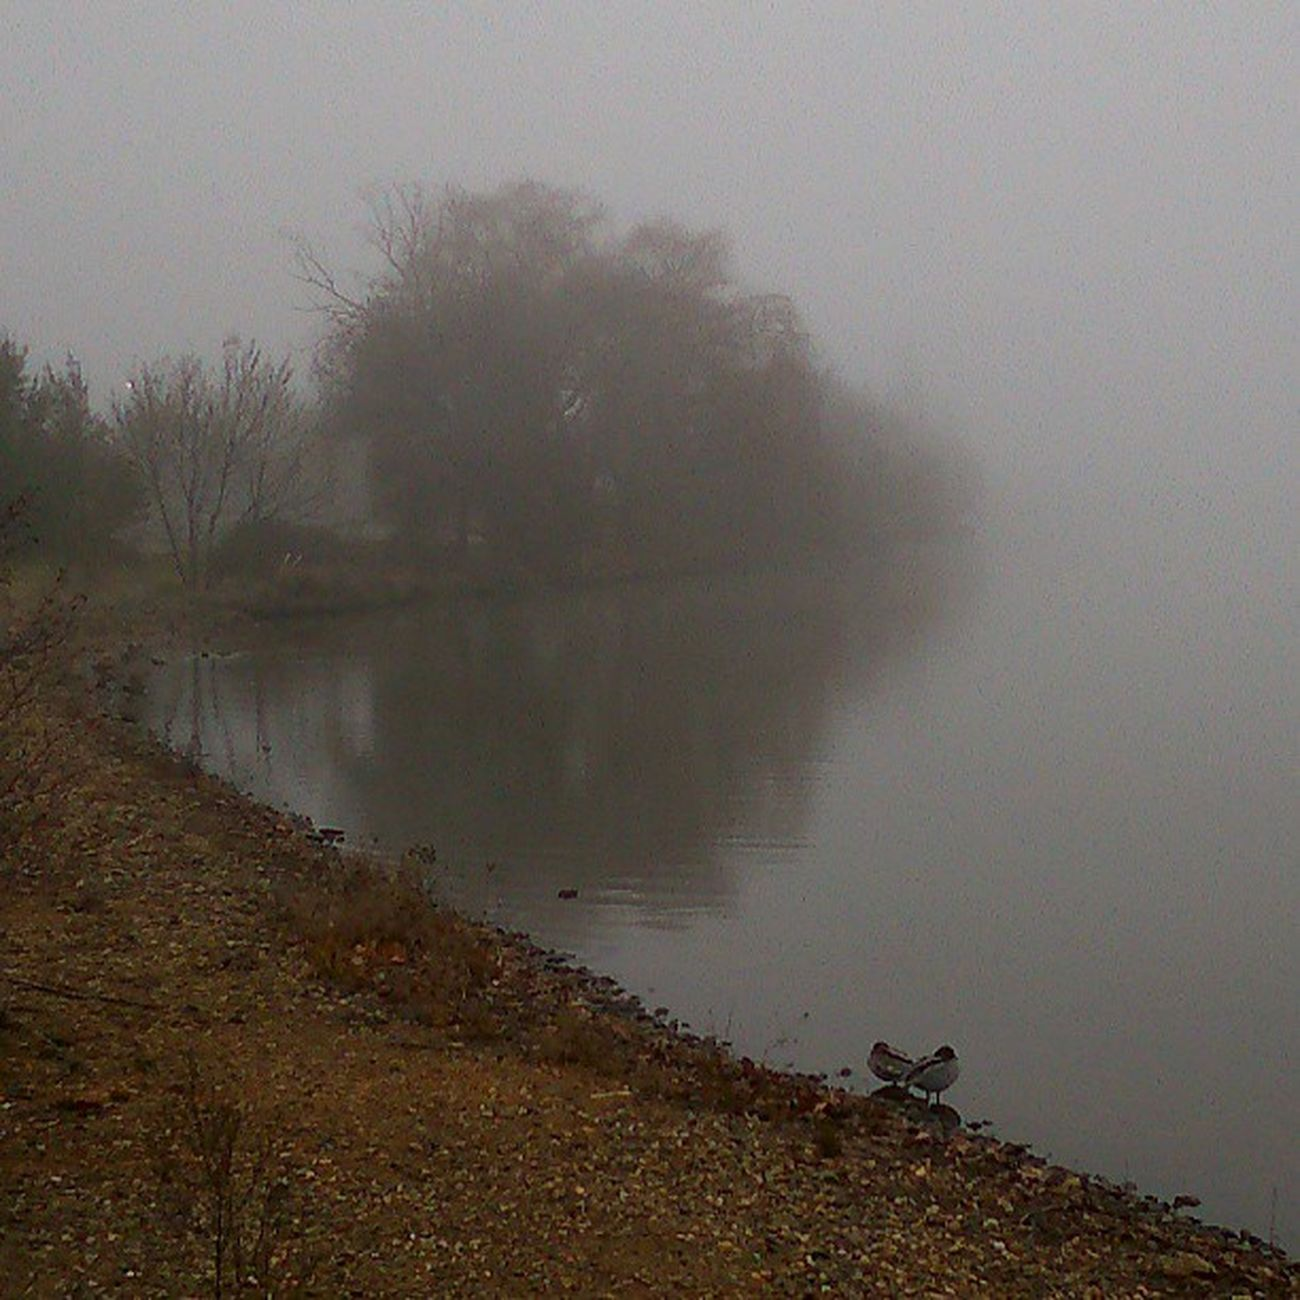 Visiting my favourite Misty Ducky  Couple again this morning...